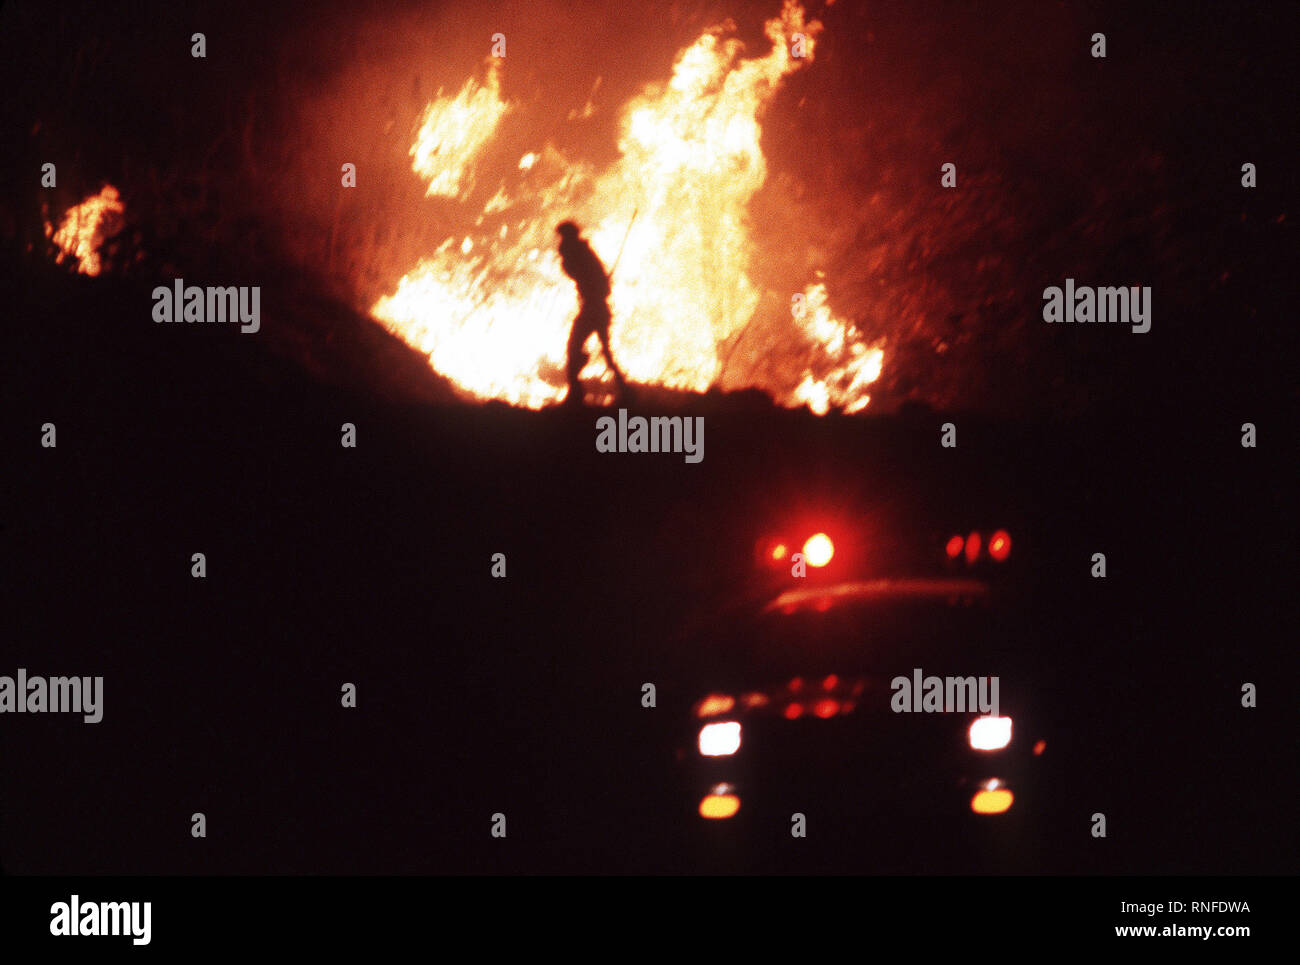 Night view of a firefighter silhouetted against a raging fire during the four-day Panorama brush fire, which started in canyons north of town and has been whipped out of control by 40-50 mph winds. Stock Photo